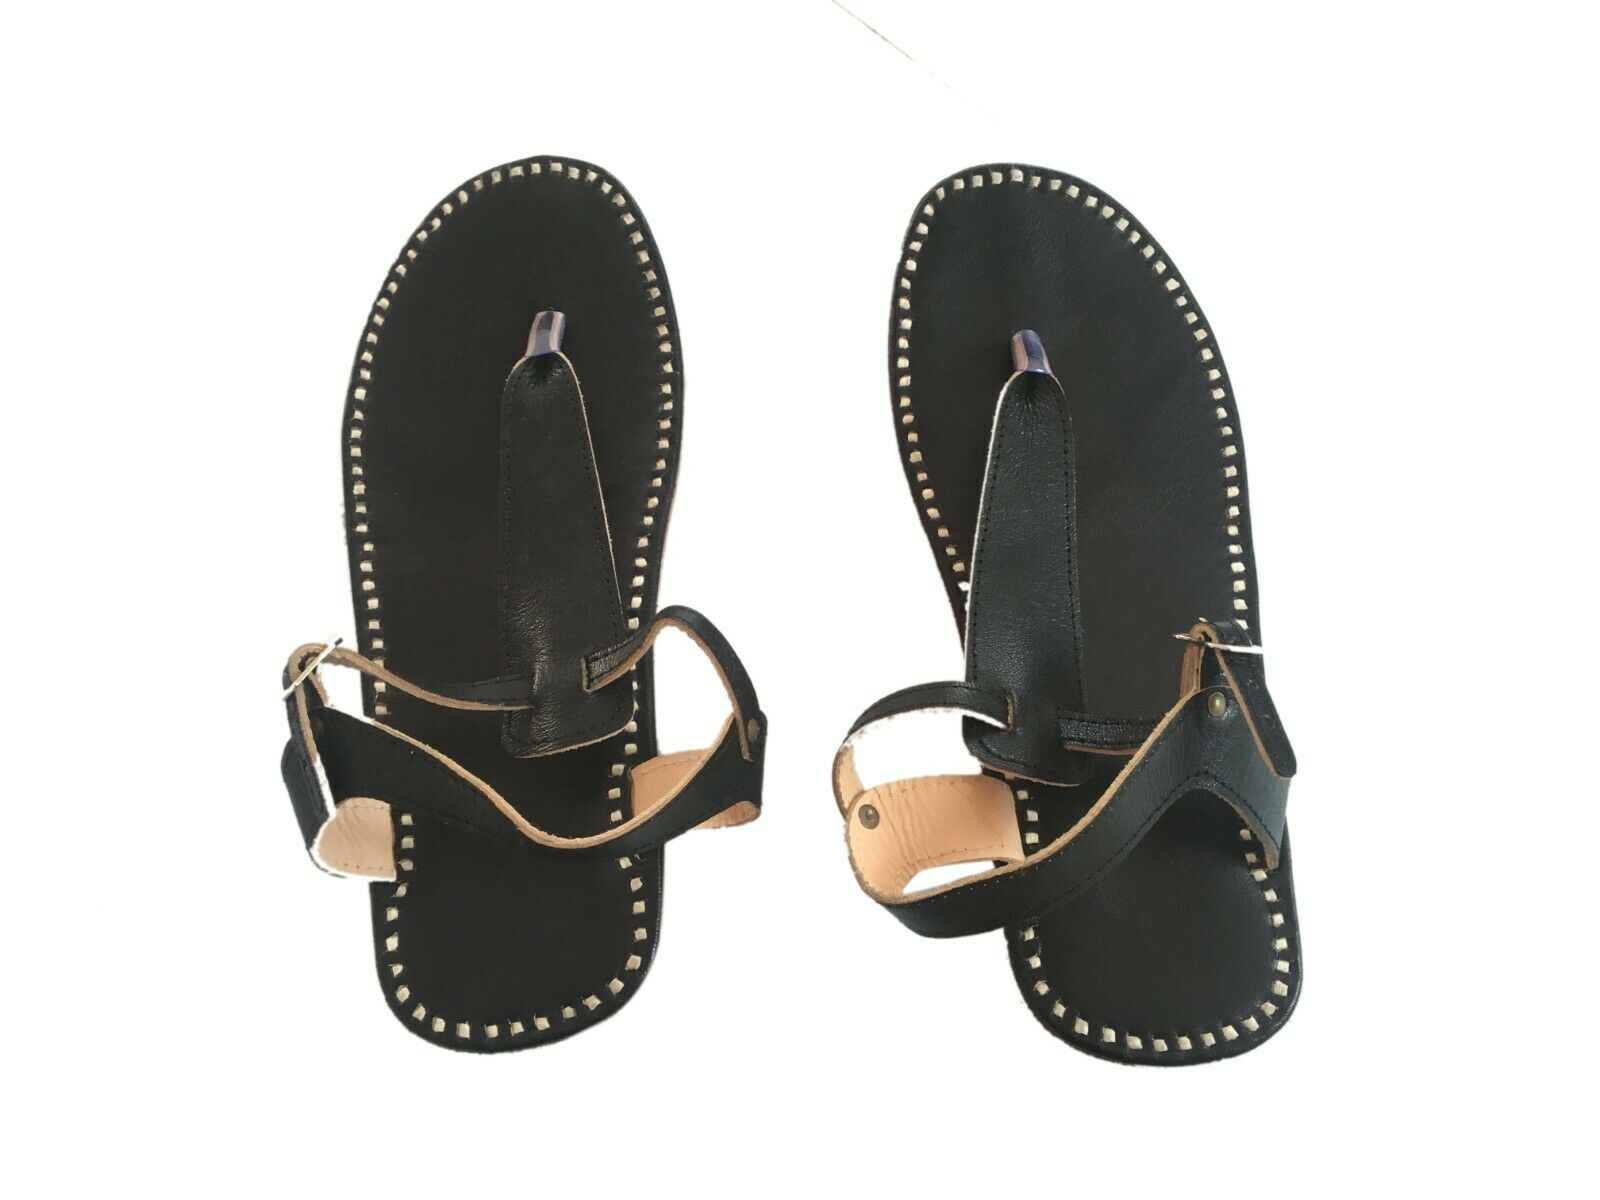 Black leather slippers mens sandals Buckle flip flops casual slippers male flats